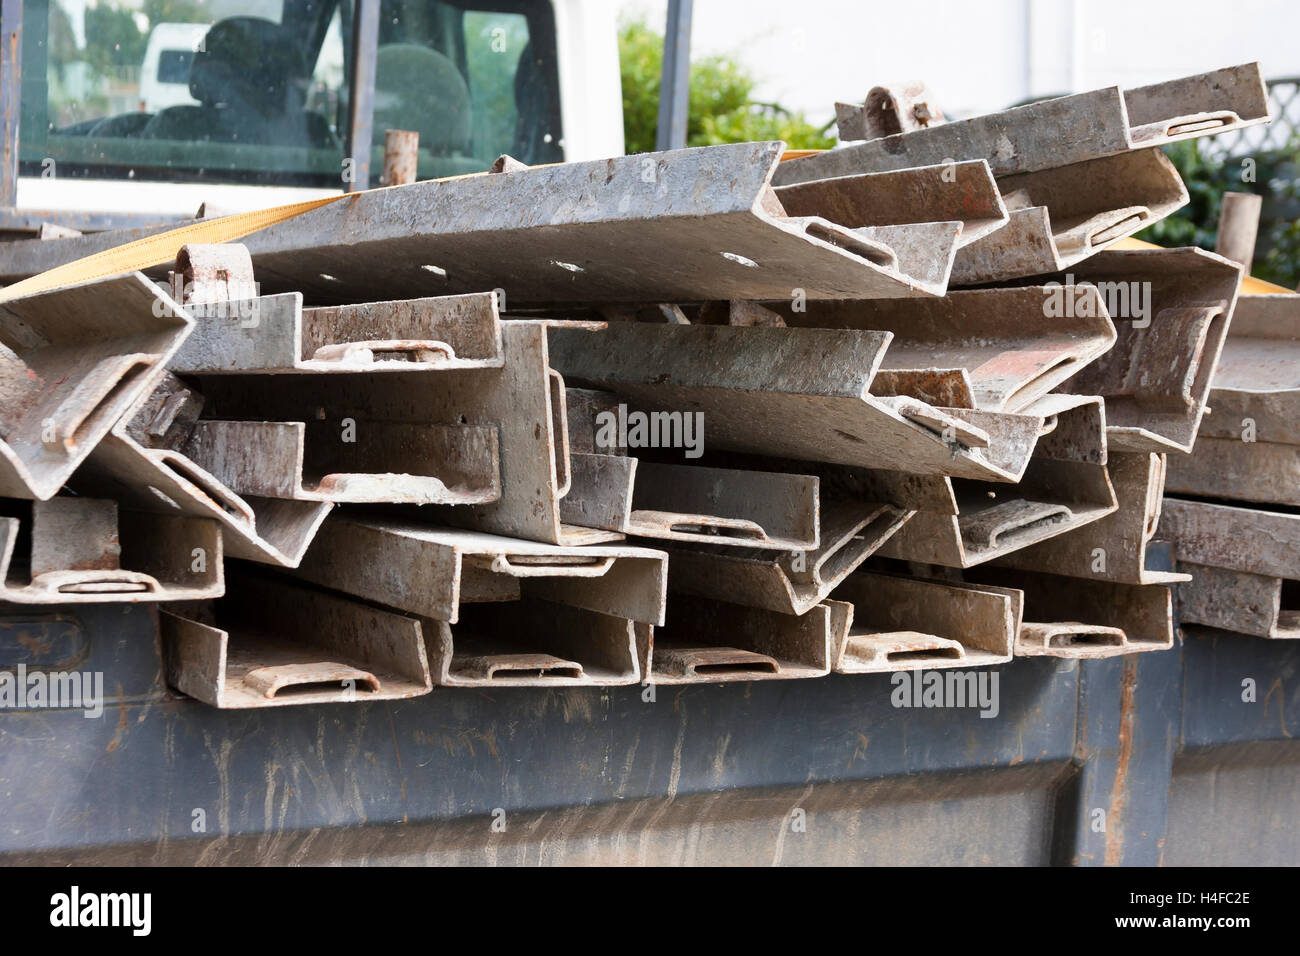 builders steel supports on truck - Stock Image